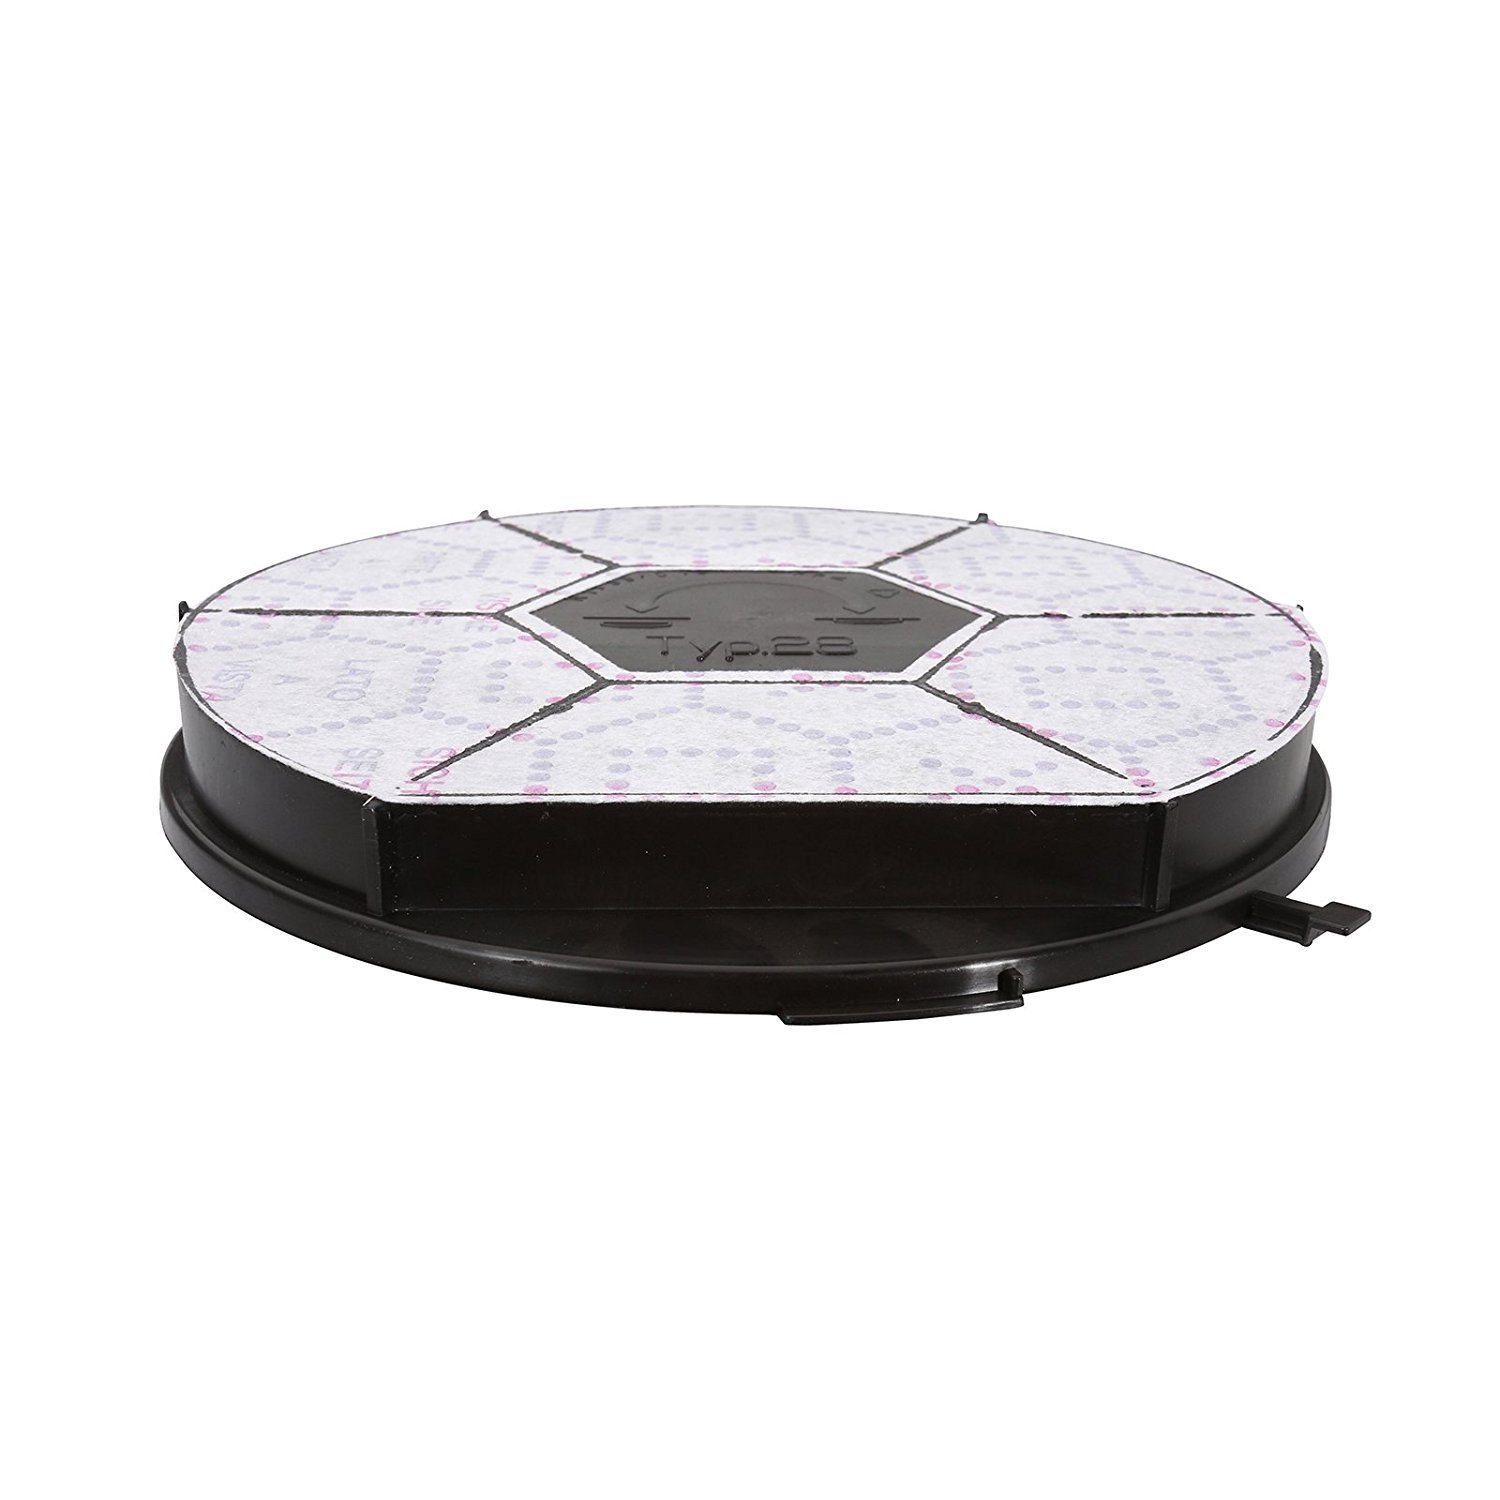 Replacement Cooker Hood Charcoal Filter Elica Type 28 for Hotpoint HCV HTV